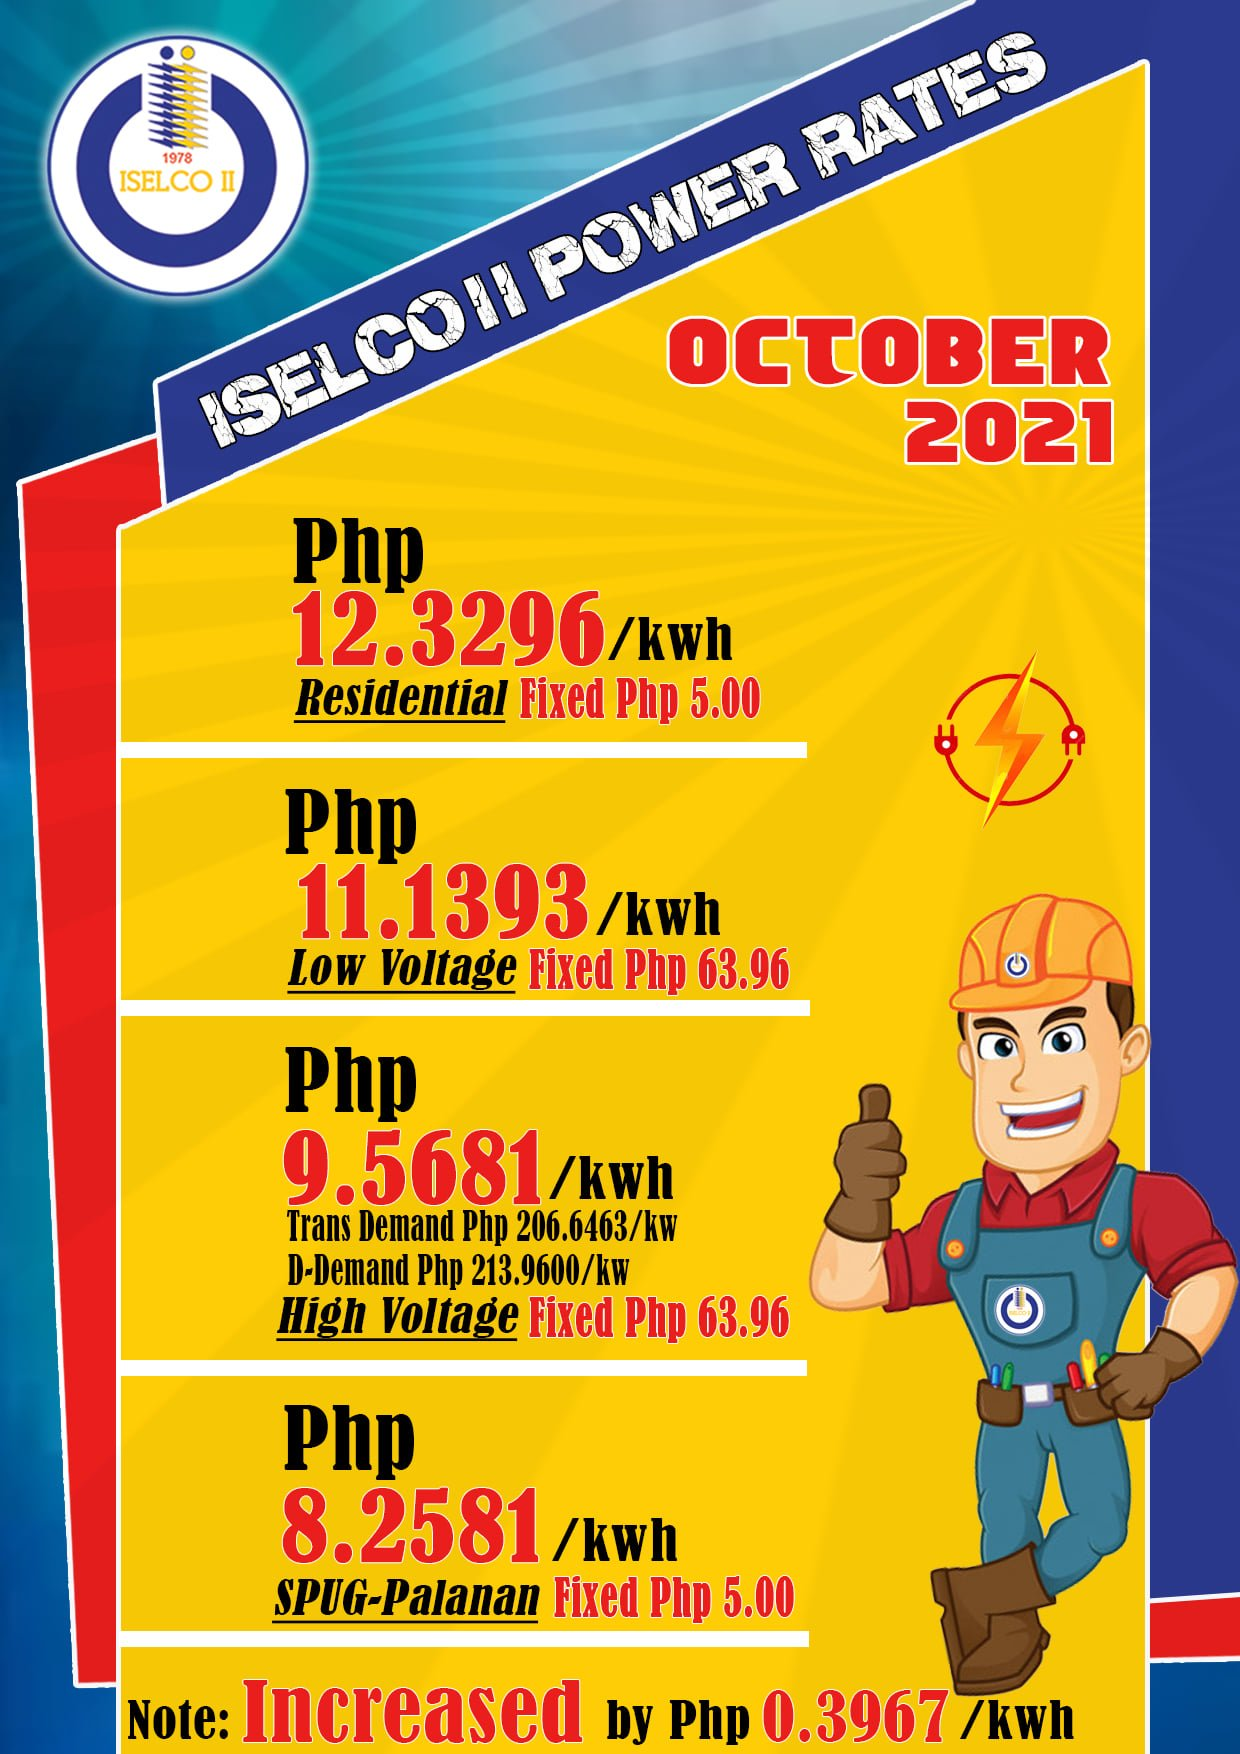 Iselco II Power Rates as of October 2021